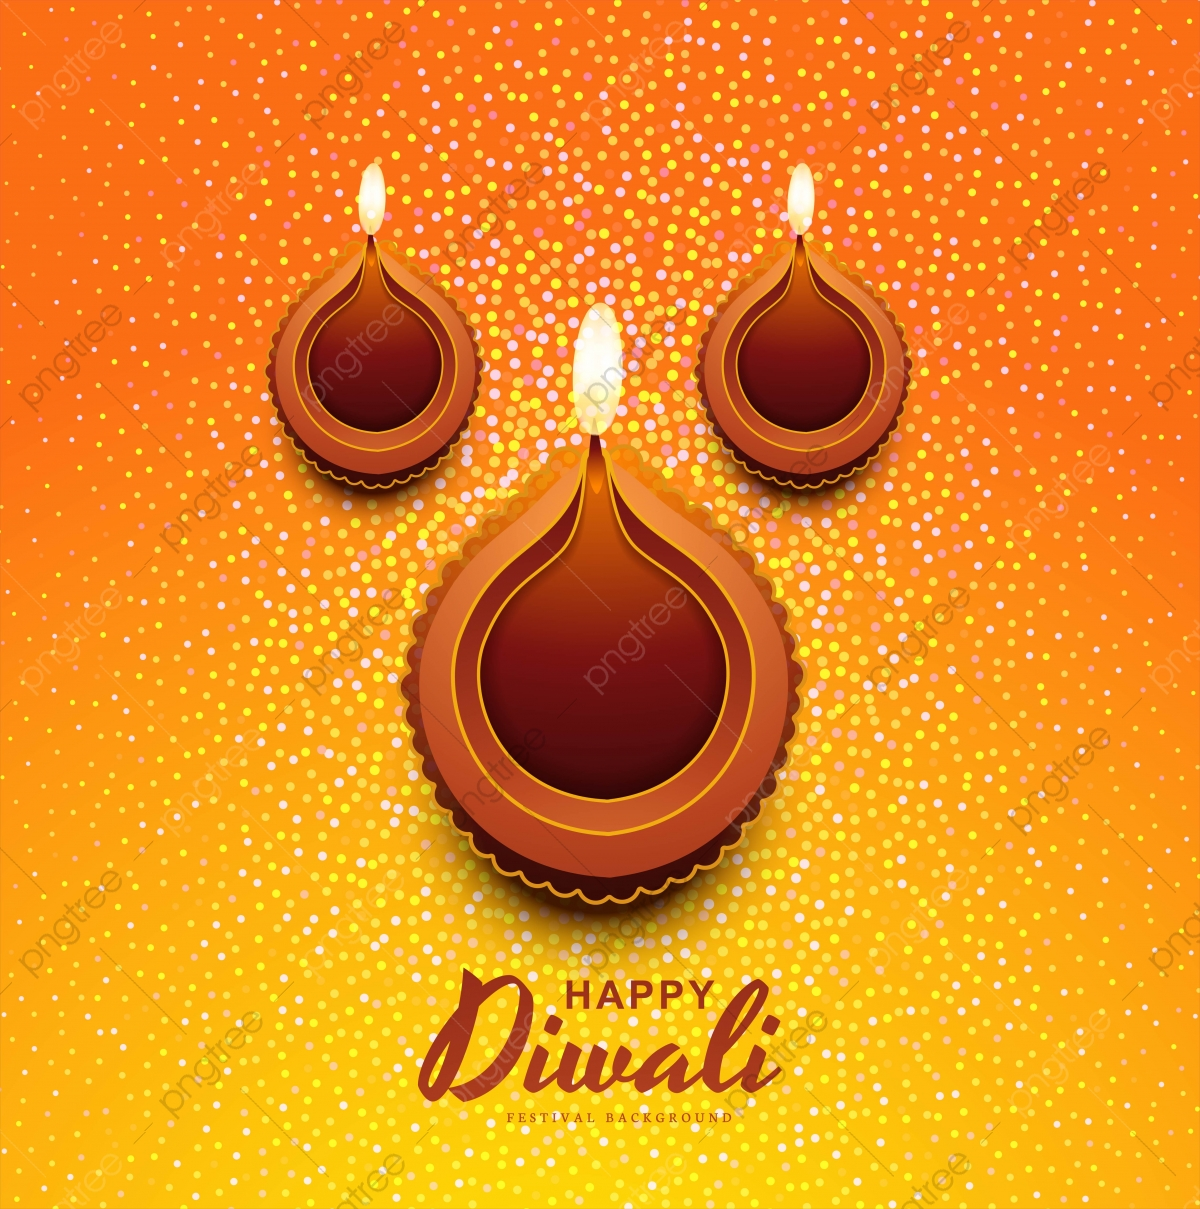 Happy Diwali Card With Glitters Decorative Diya Festival Background Abstract Light Diwali Png And Vector With Transparent Background For Free Download